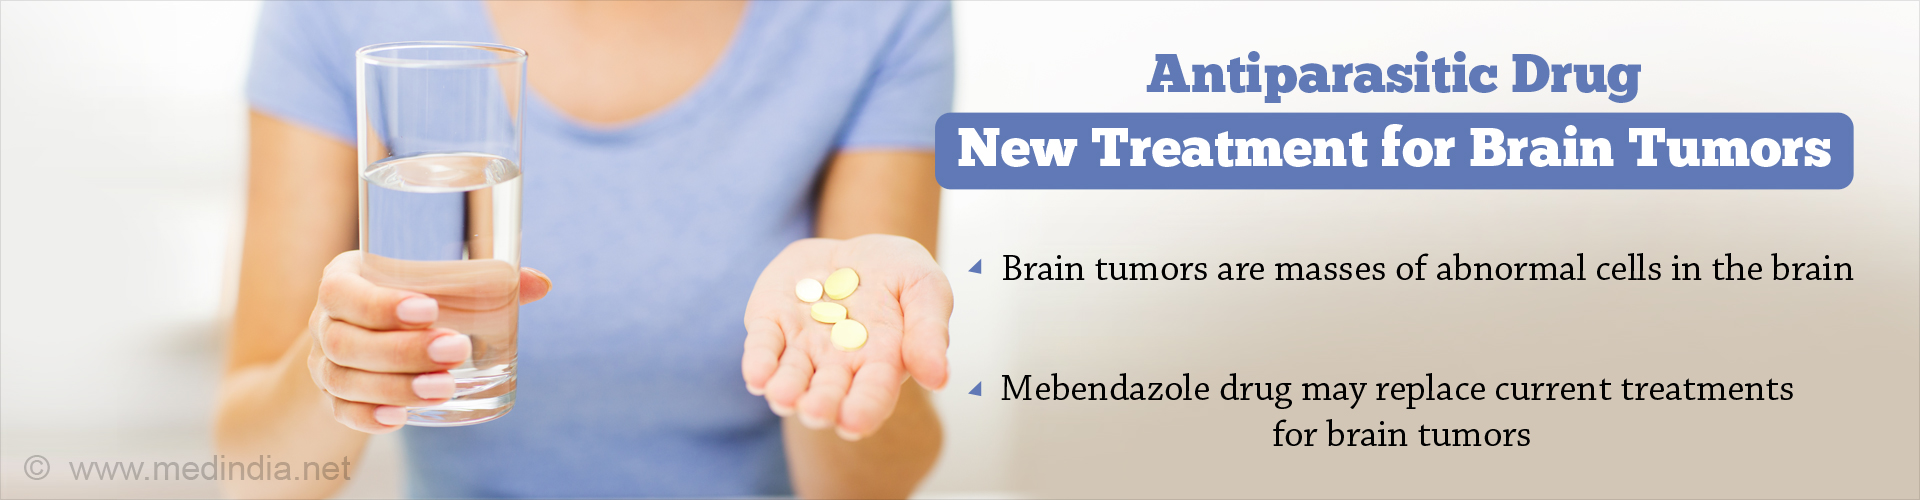 Can Mebendazole Drug be an Effective Treatment For Brain Tumors